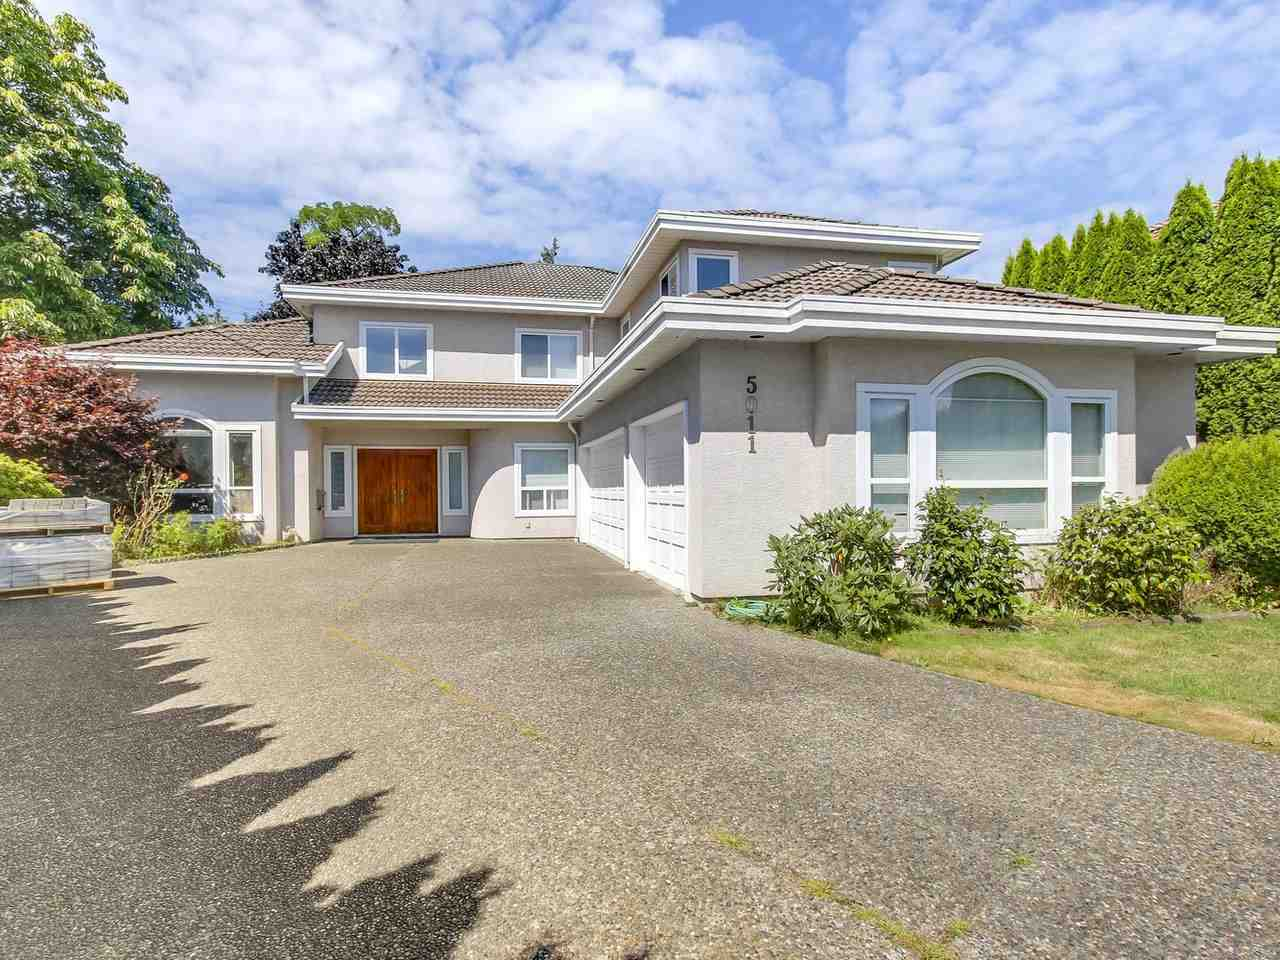 Gorgeous house with over 3500 sqft sitting in cul-de-sac. Walking distance to transit & schools. Great location and well kept house.  Main floor contains a guest suite with full bathroom.  School catchment is McKay Elementary & Boyd Secondary.  Call today for private showing. OPEN HOUSE: DEC.16, SAT. 1-3PM.